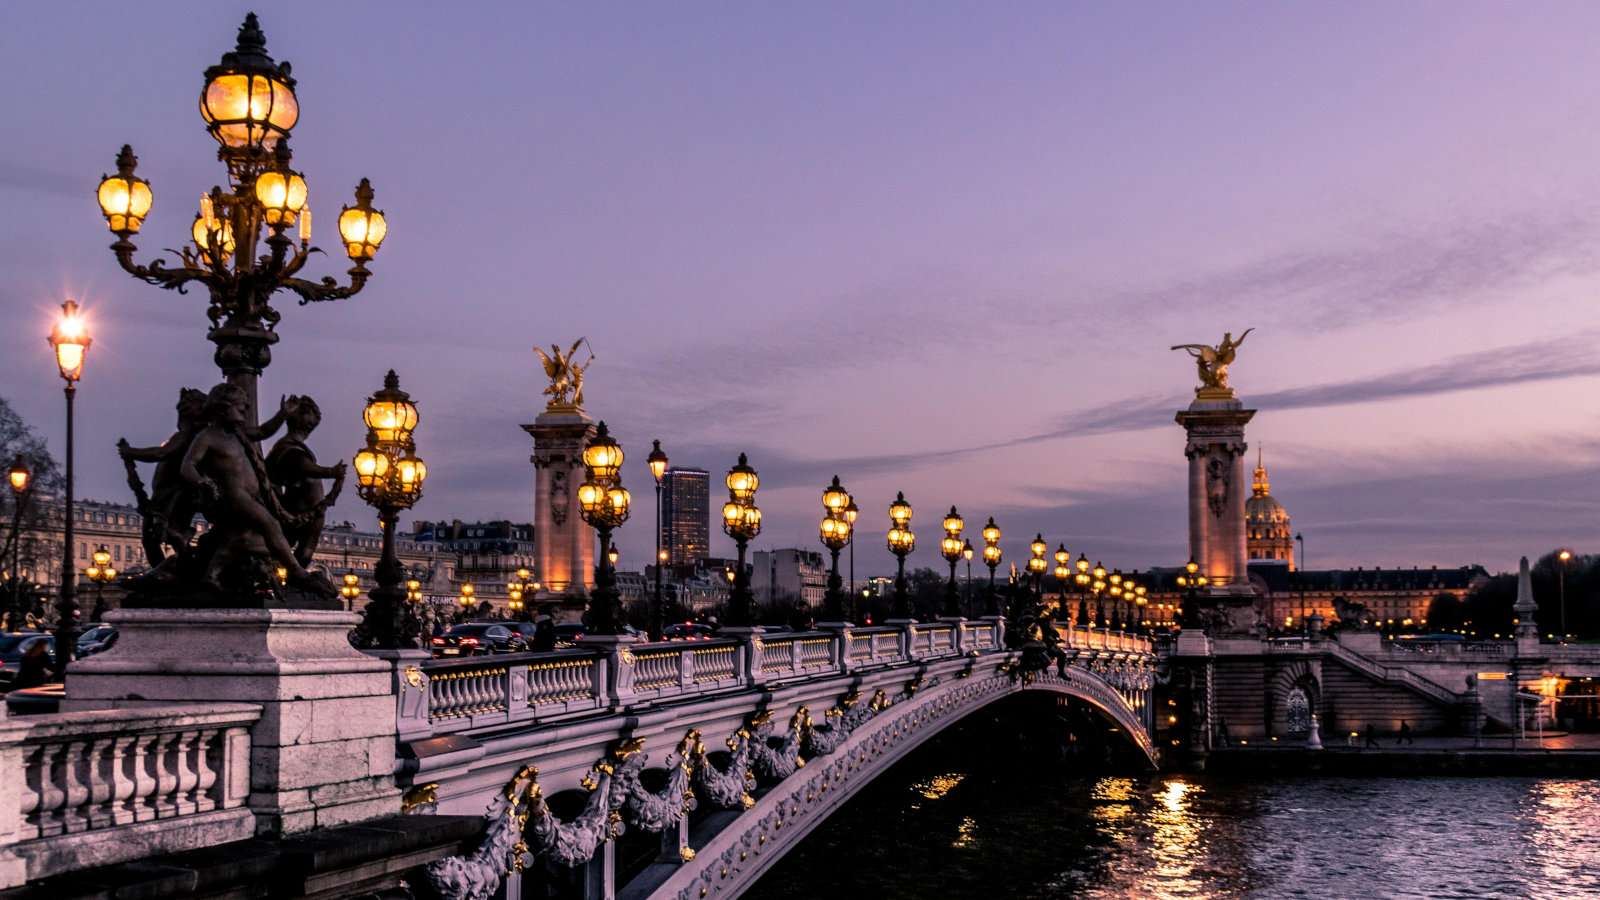 Brand G's Burgundy and Provence river cruise offers the ultimate in romance for LGBT travellers